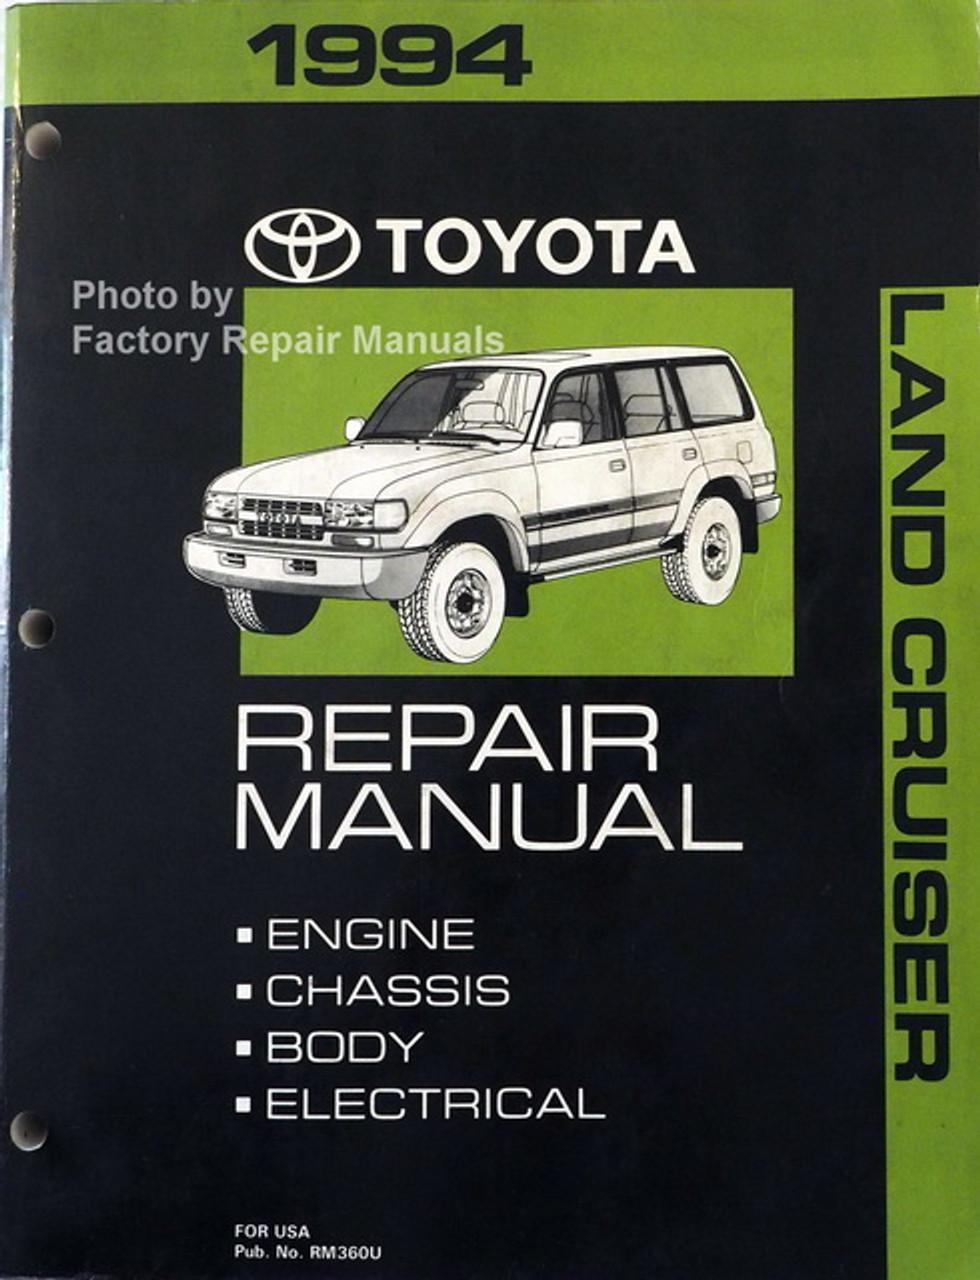 1994 Toyota Land Cruiser Factory Service Manual Original Shop Repair Factory Repair Manuals